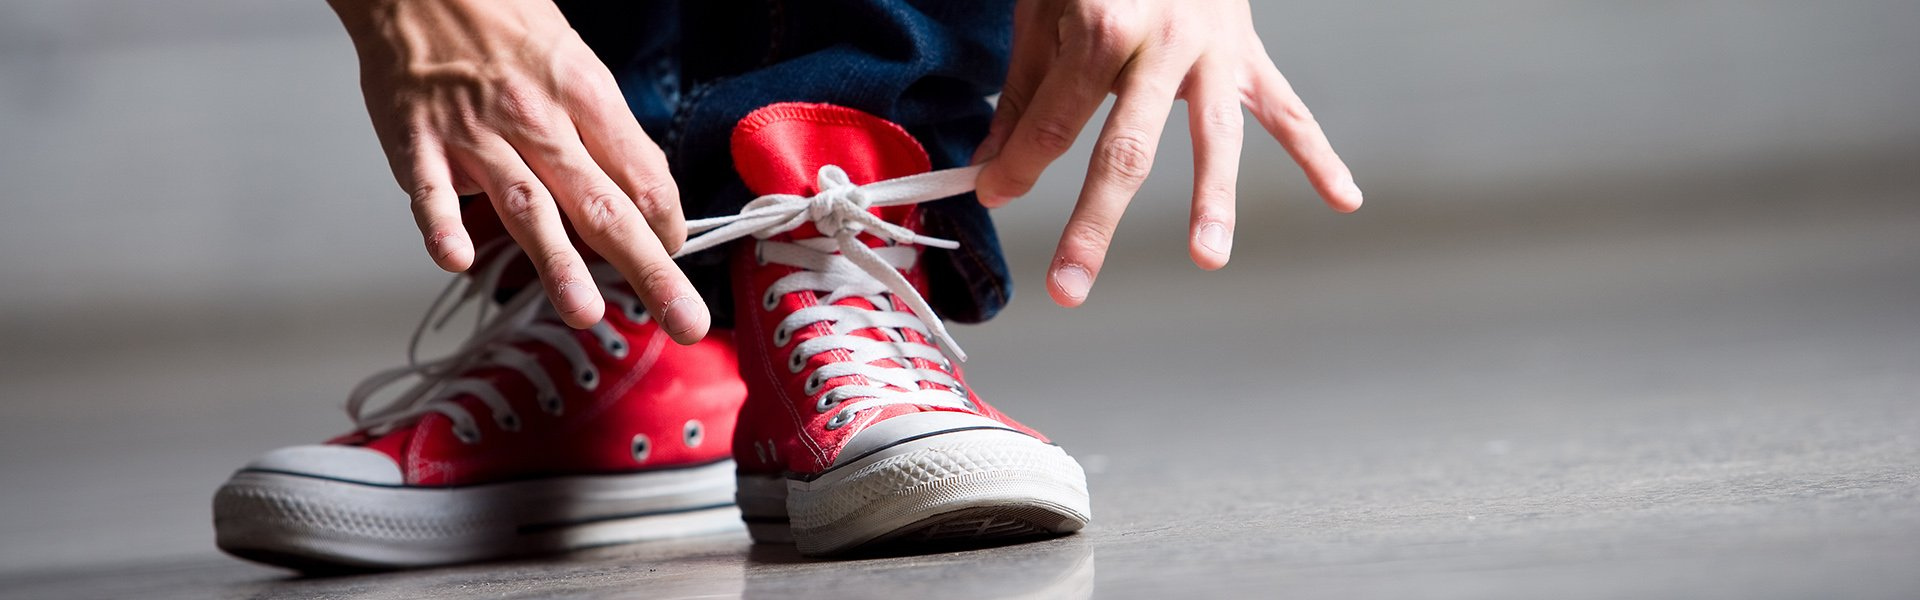 Hands tying white shoestrings on red sneakers with white soles